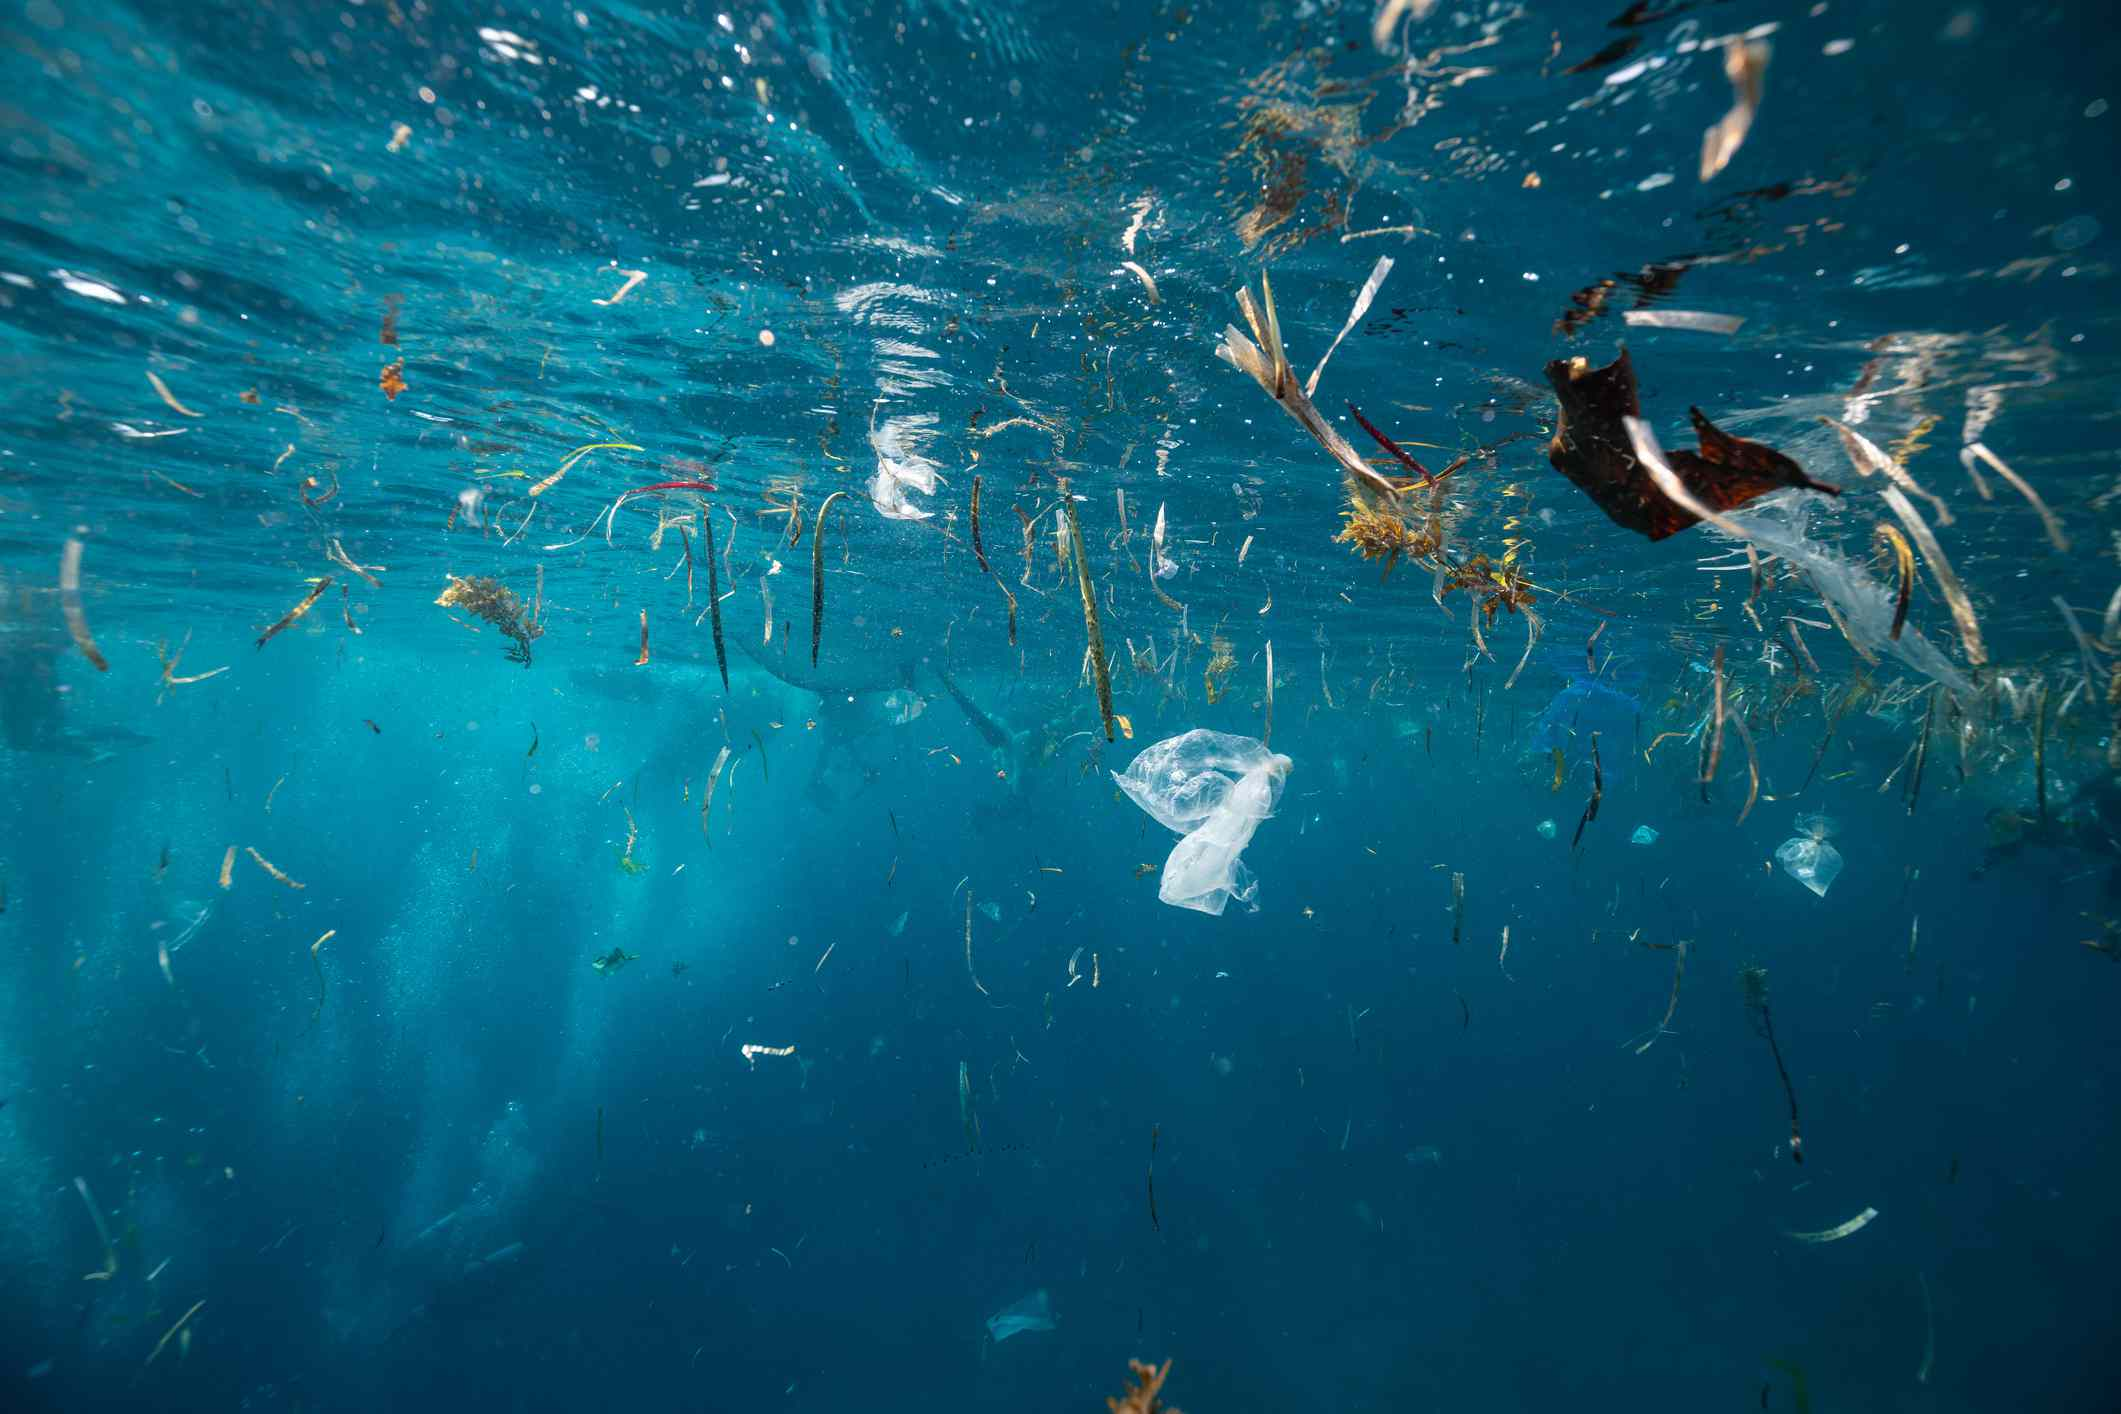 Plastic garbage is swimming on rhe water surface - stock photo